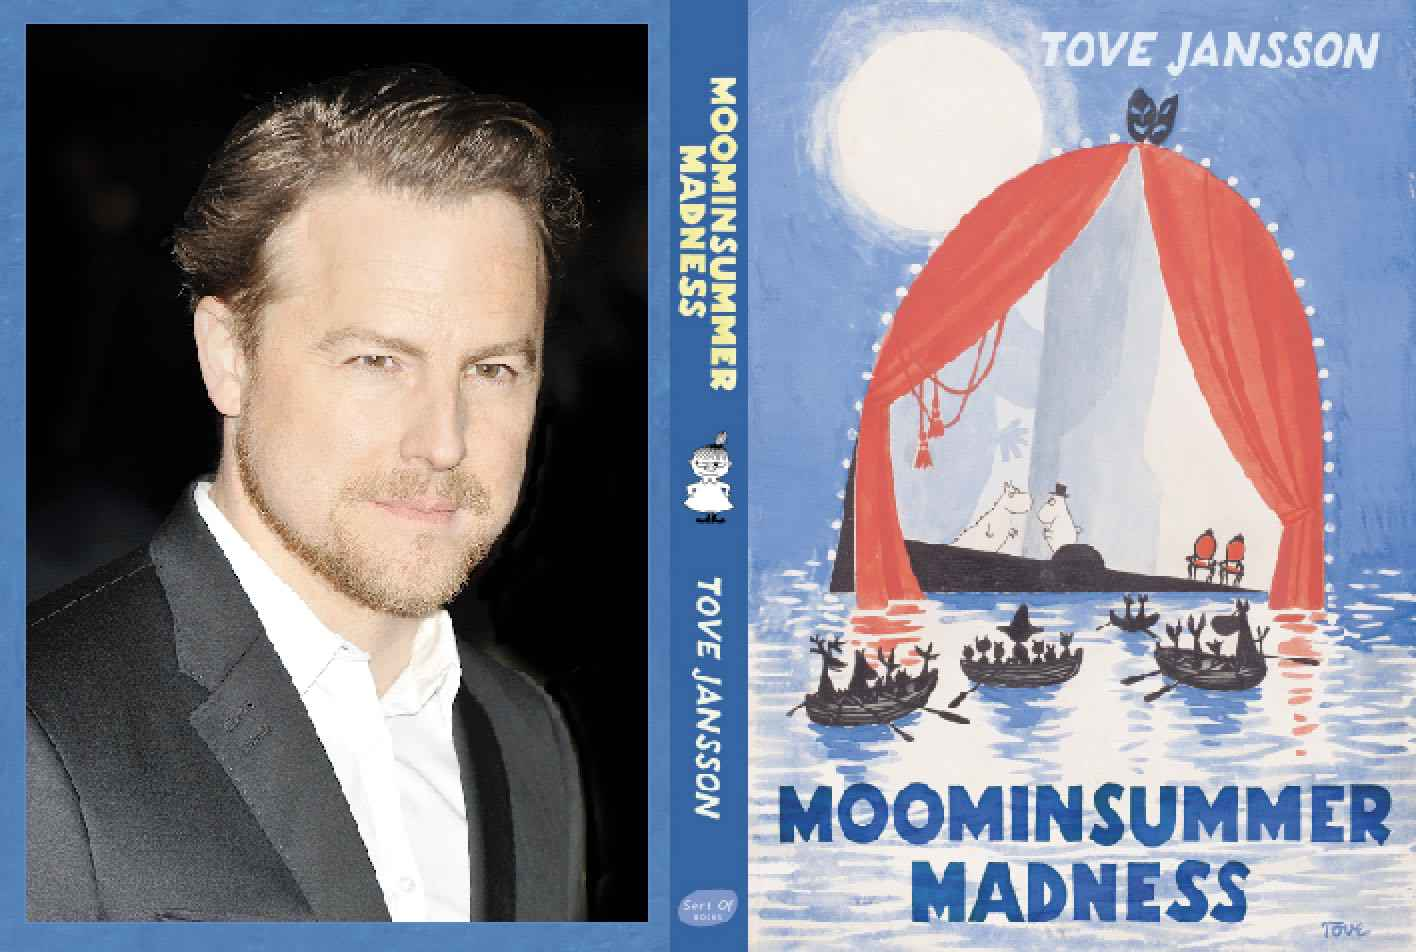 """This beautiful new edition puts Jansson's Comedy of Errors where it belongs: centre stage"" - Actor/Director Samuel West on the theatrical imagination behind Tove Jansson's glorious midsummer title"